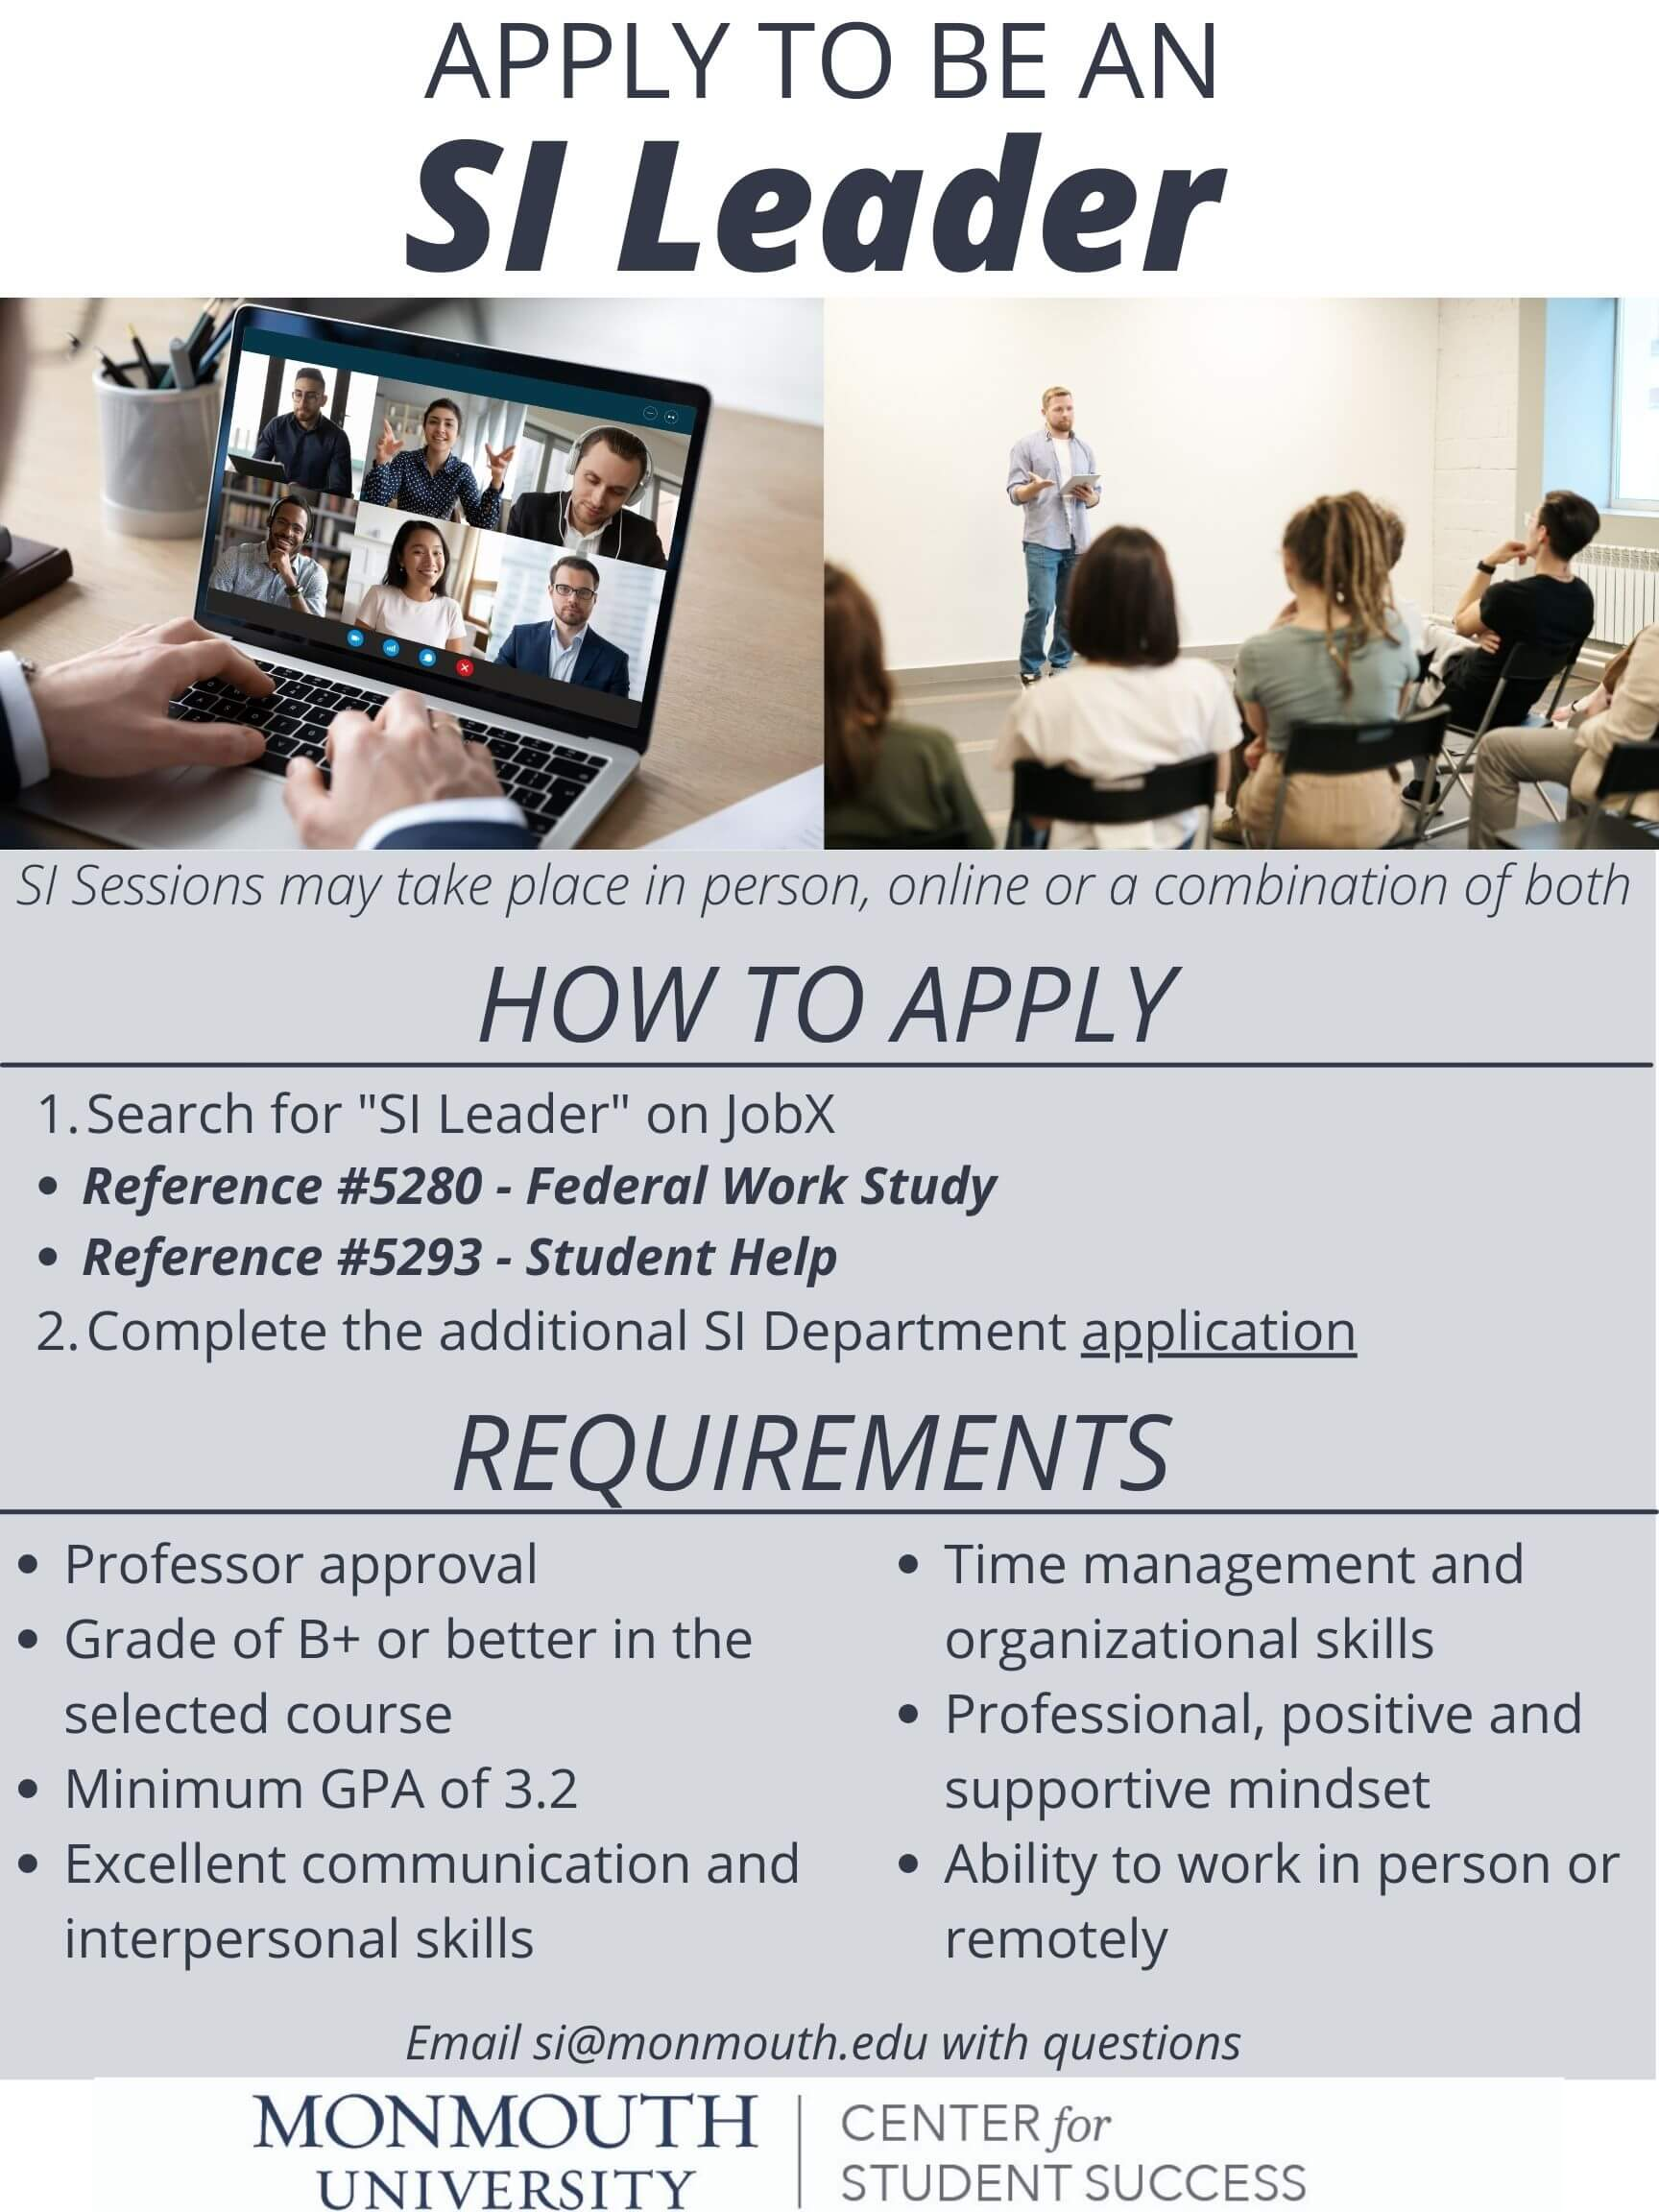 Apply to be an Supplemental Instruction (SI) Leader - click or tap image to complete online application